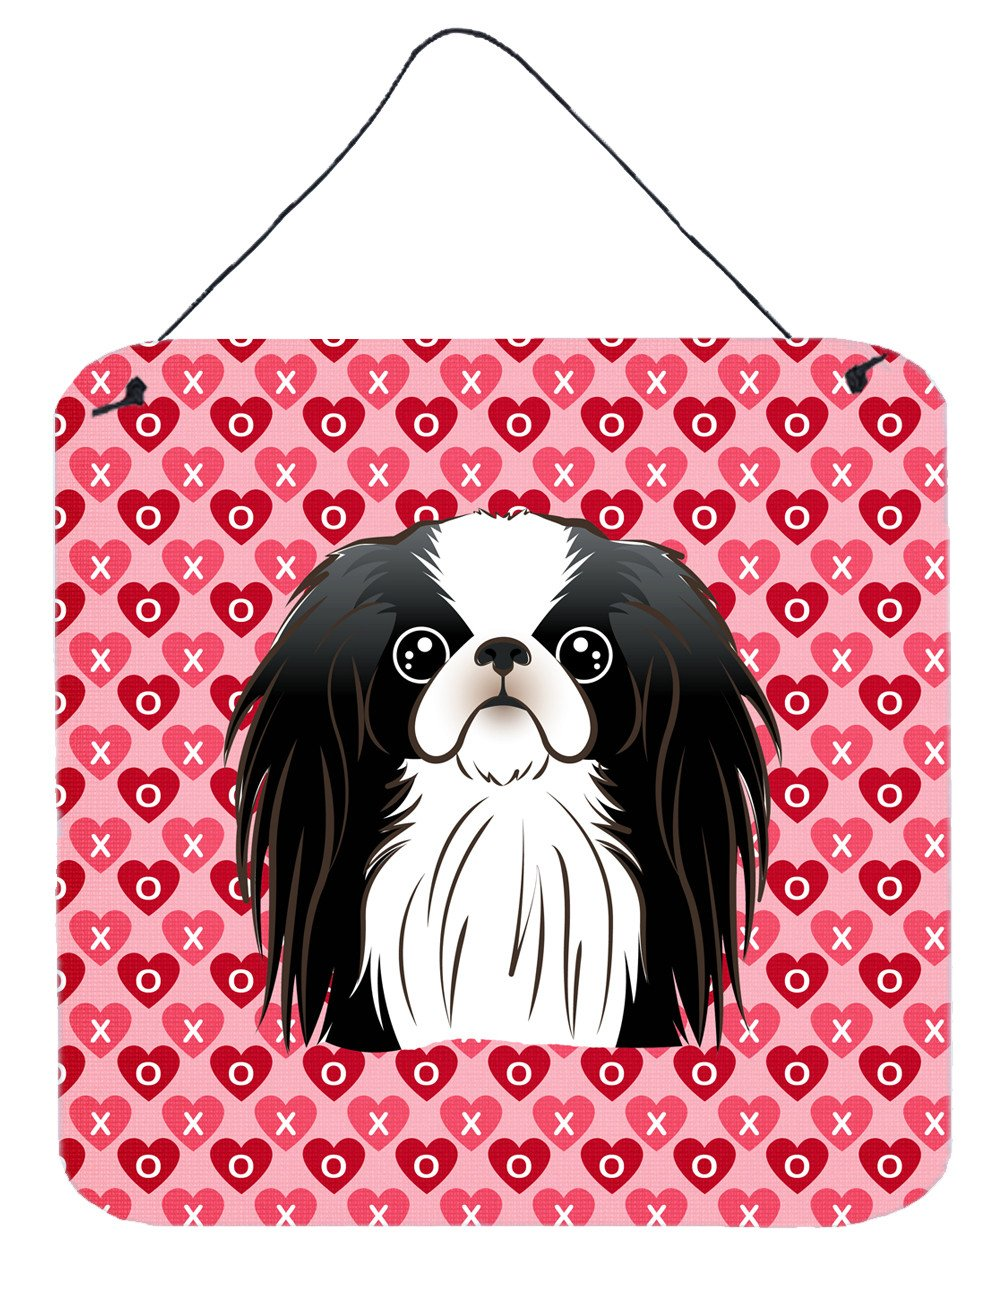 Japanese Chin Hearts Wall or Door Hanging Prints BB5300DS66 by Caroline's Treasures